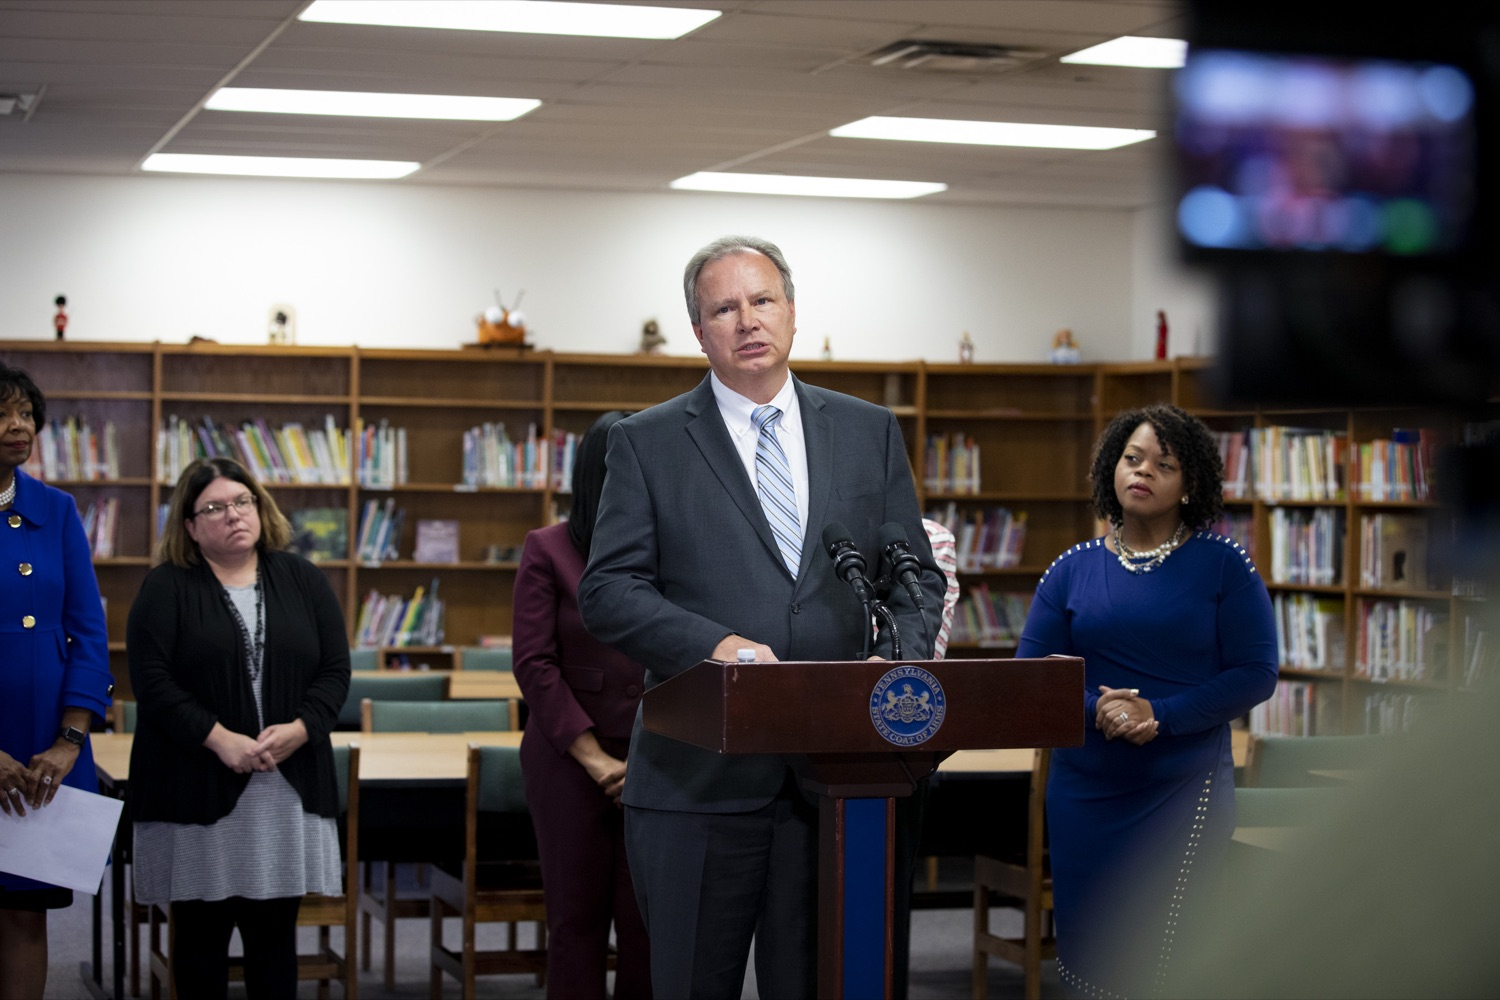 """<a href=""""http://filesource.abacast.com/commonwealthofpa/photo/17611_AUD_GEN_HBG_AUDIT_UPDATE_CZ_11.JPG"""" target=""""_blank"""">⇣Download Photo<br></a>Harrisburg School District Financial Recovery Plan Service Director John J. George discusses the potential consequences of a recent legislative proposal, House Bill 1800, at Foose Elementary School in Harrisburg on November 25, 2019."""